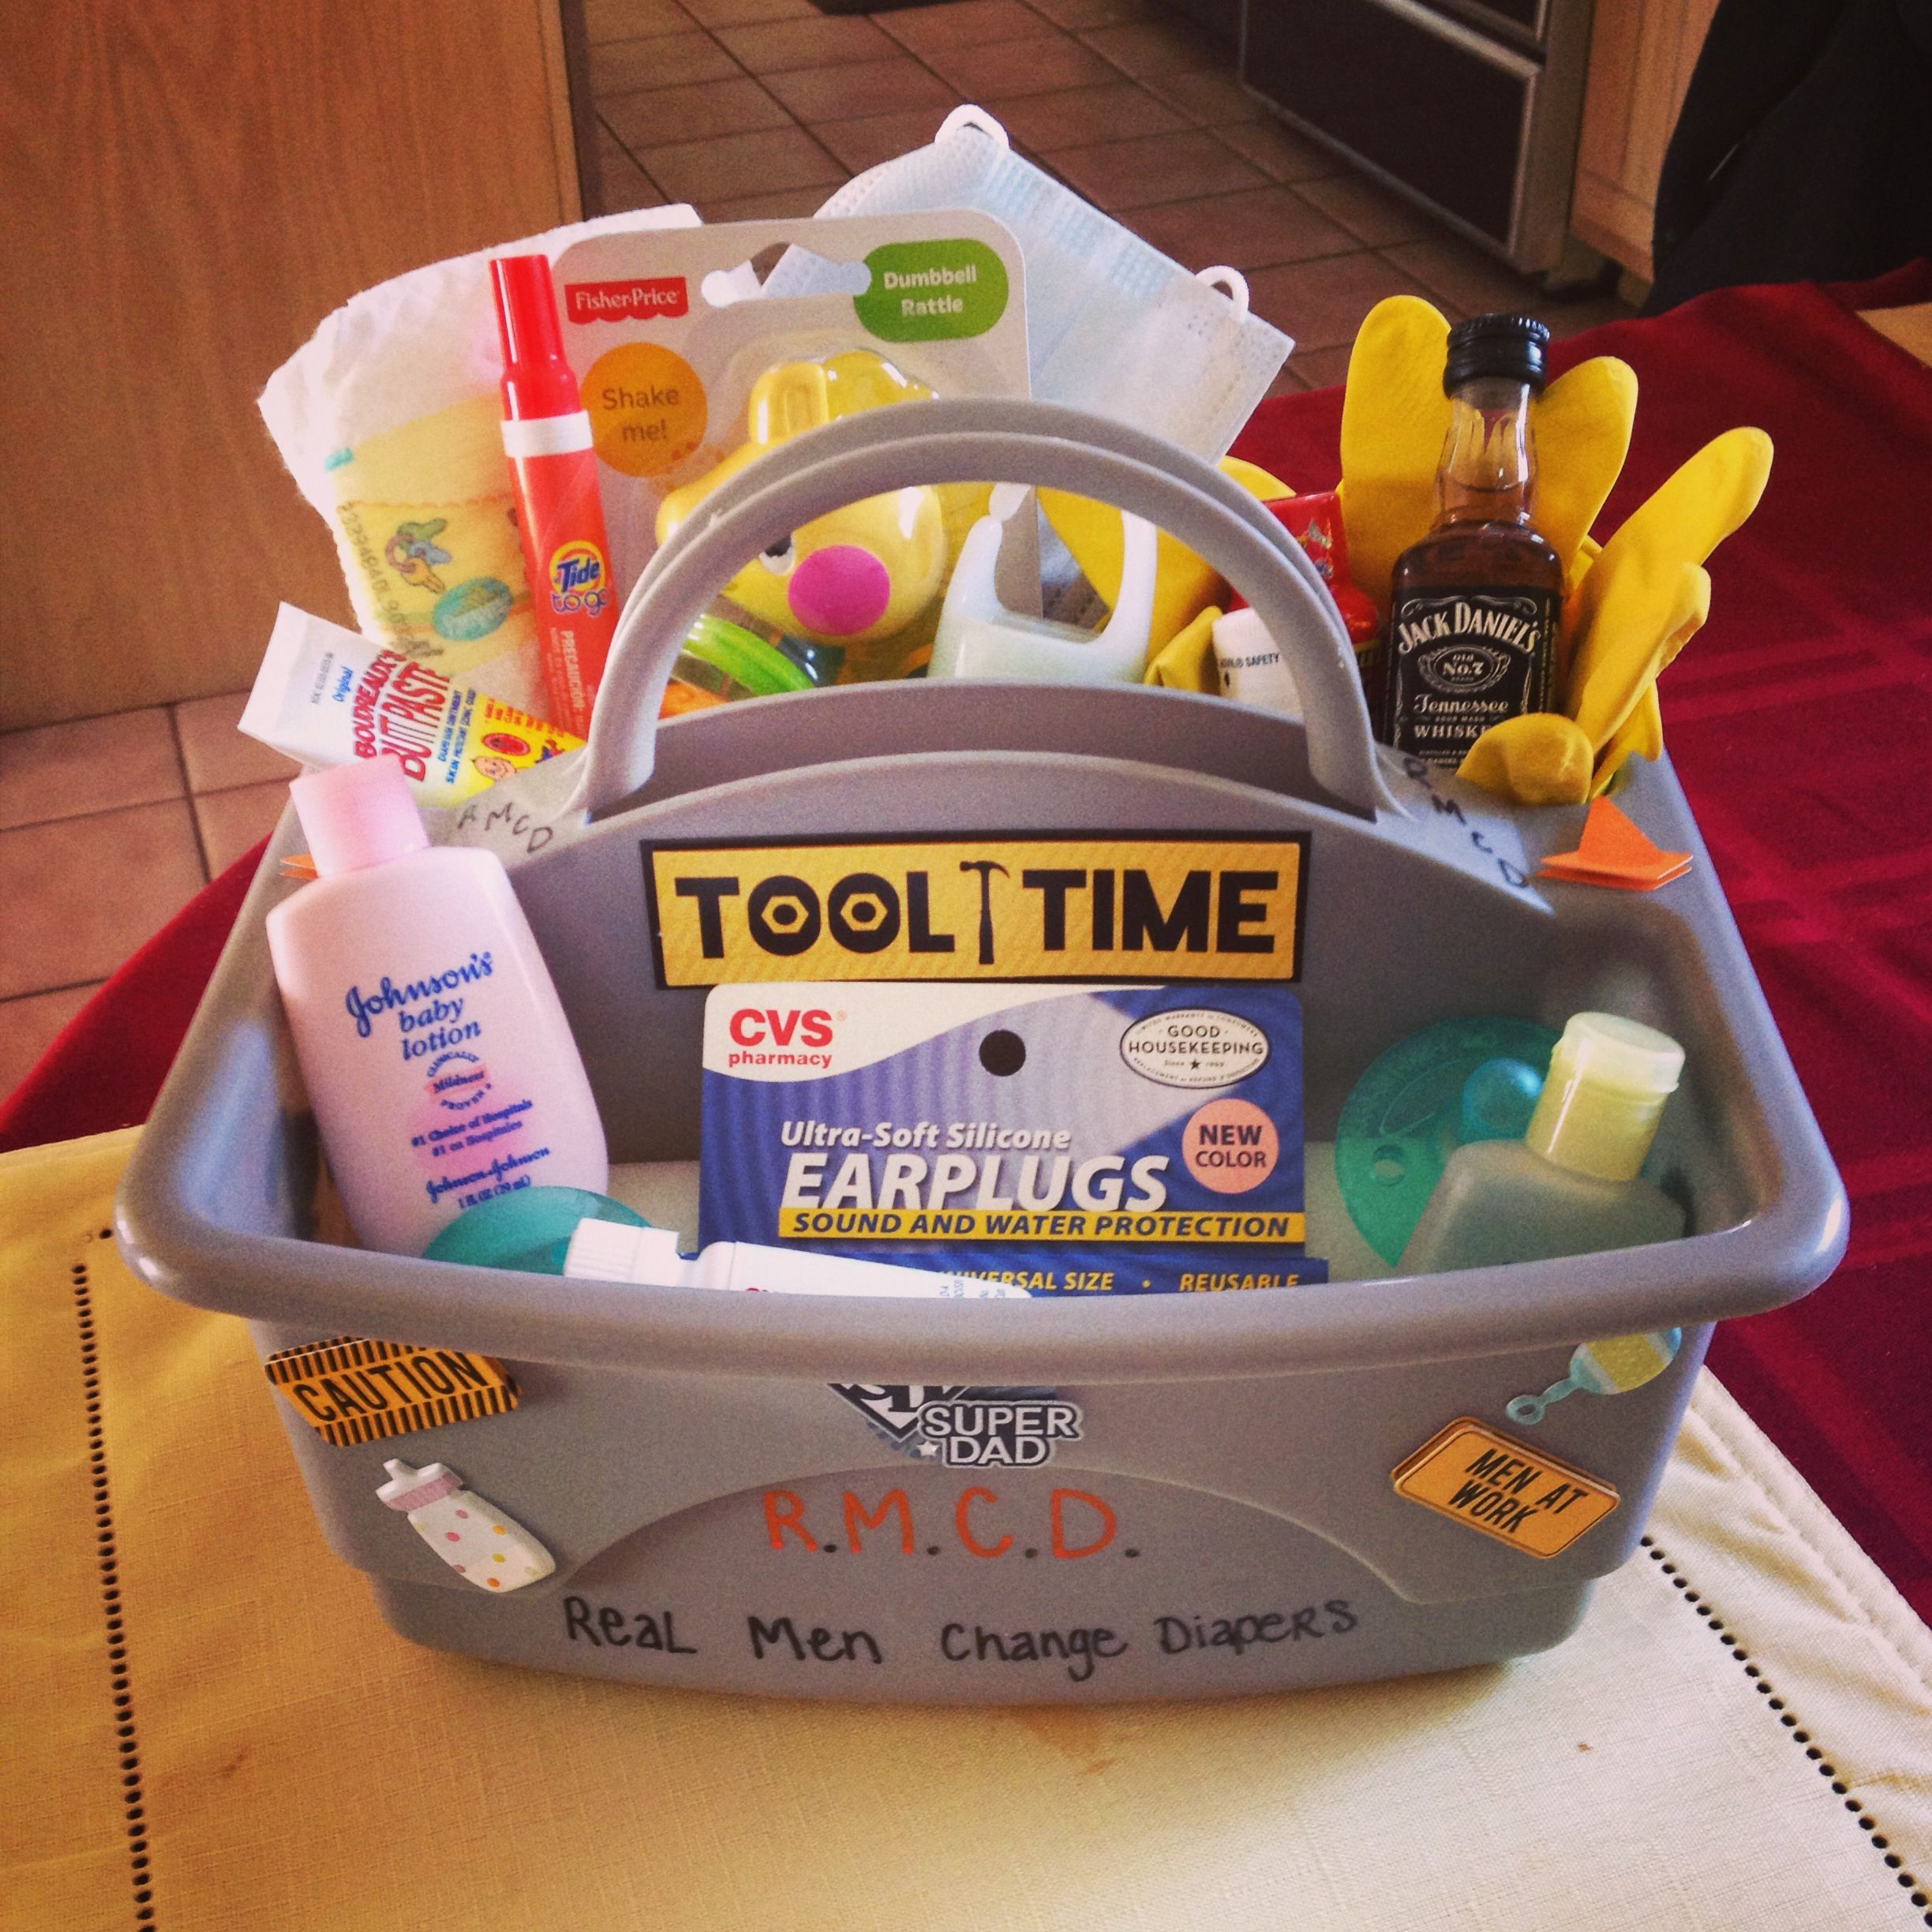 Mens Baby Shower Rmcd Real Men Change Diapers A Daddy Toolbox To Give To Daddy S To Be Contents D Baby Shower Dad Daddy Baby Shower Baby Shower Gifts